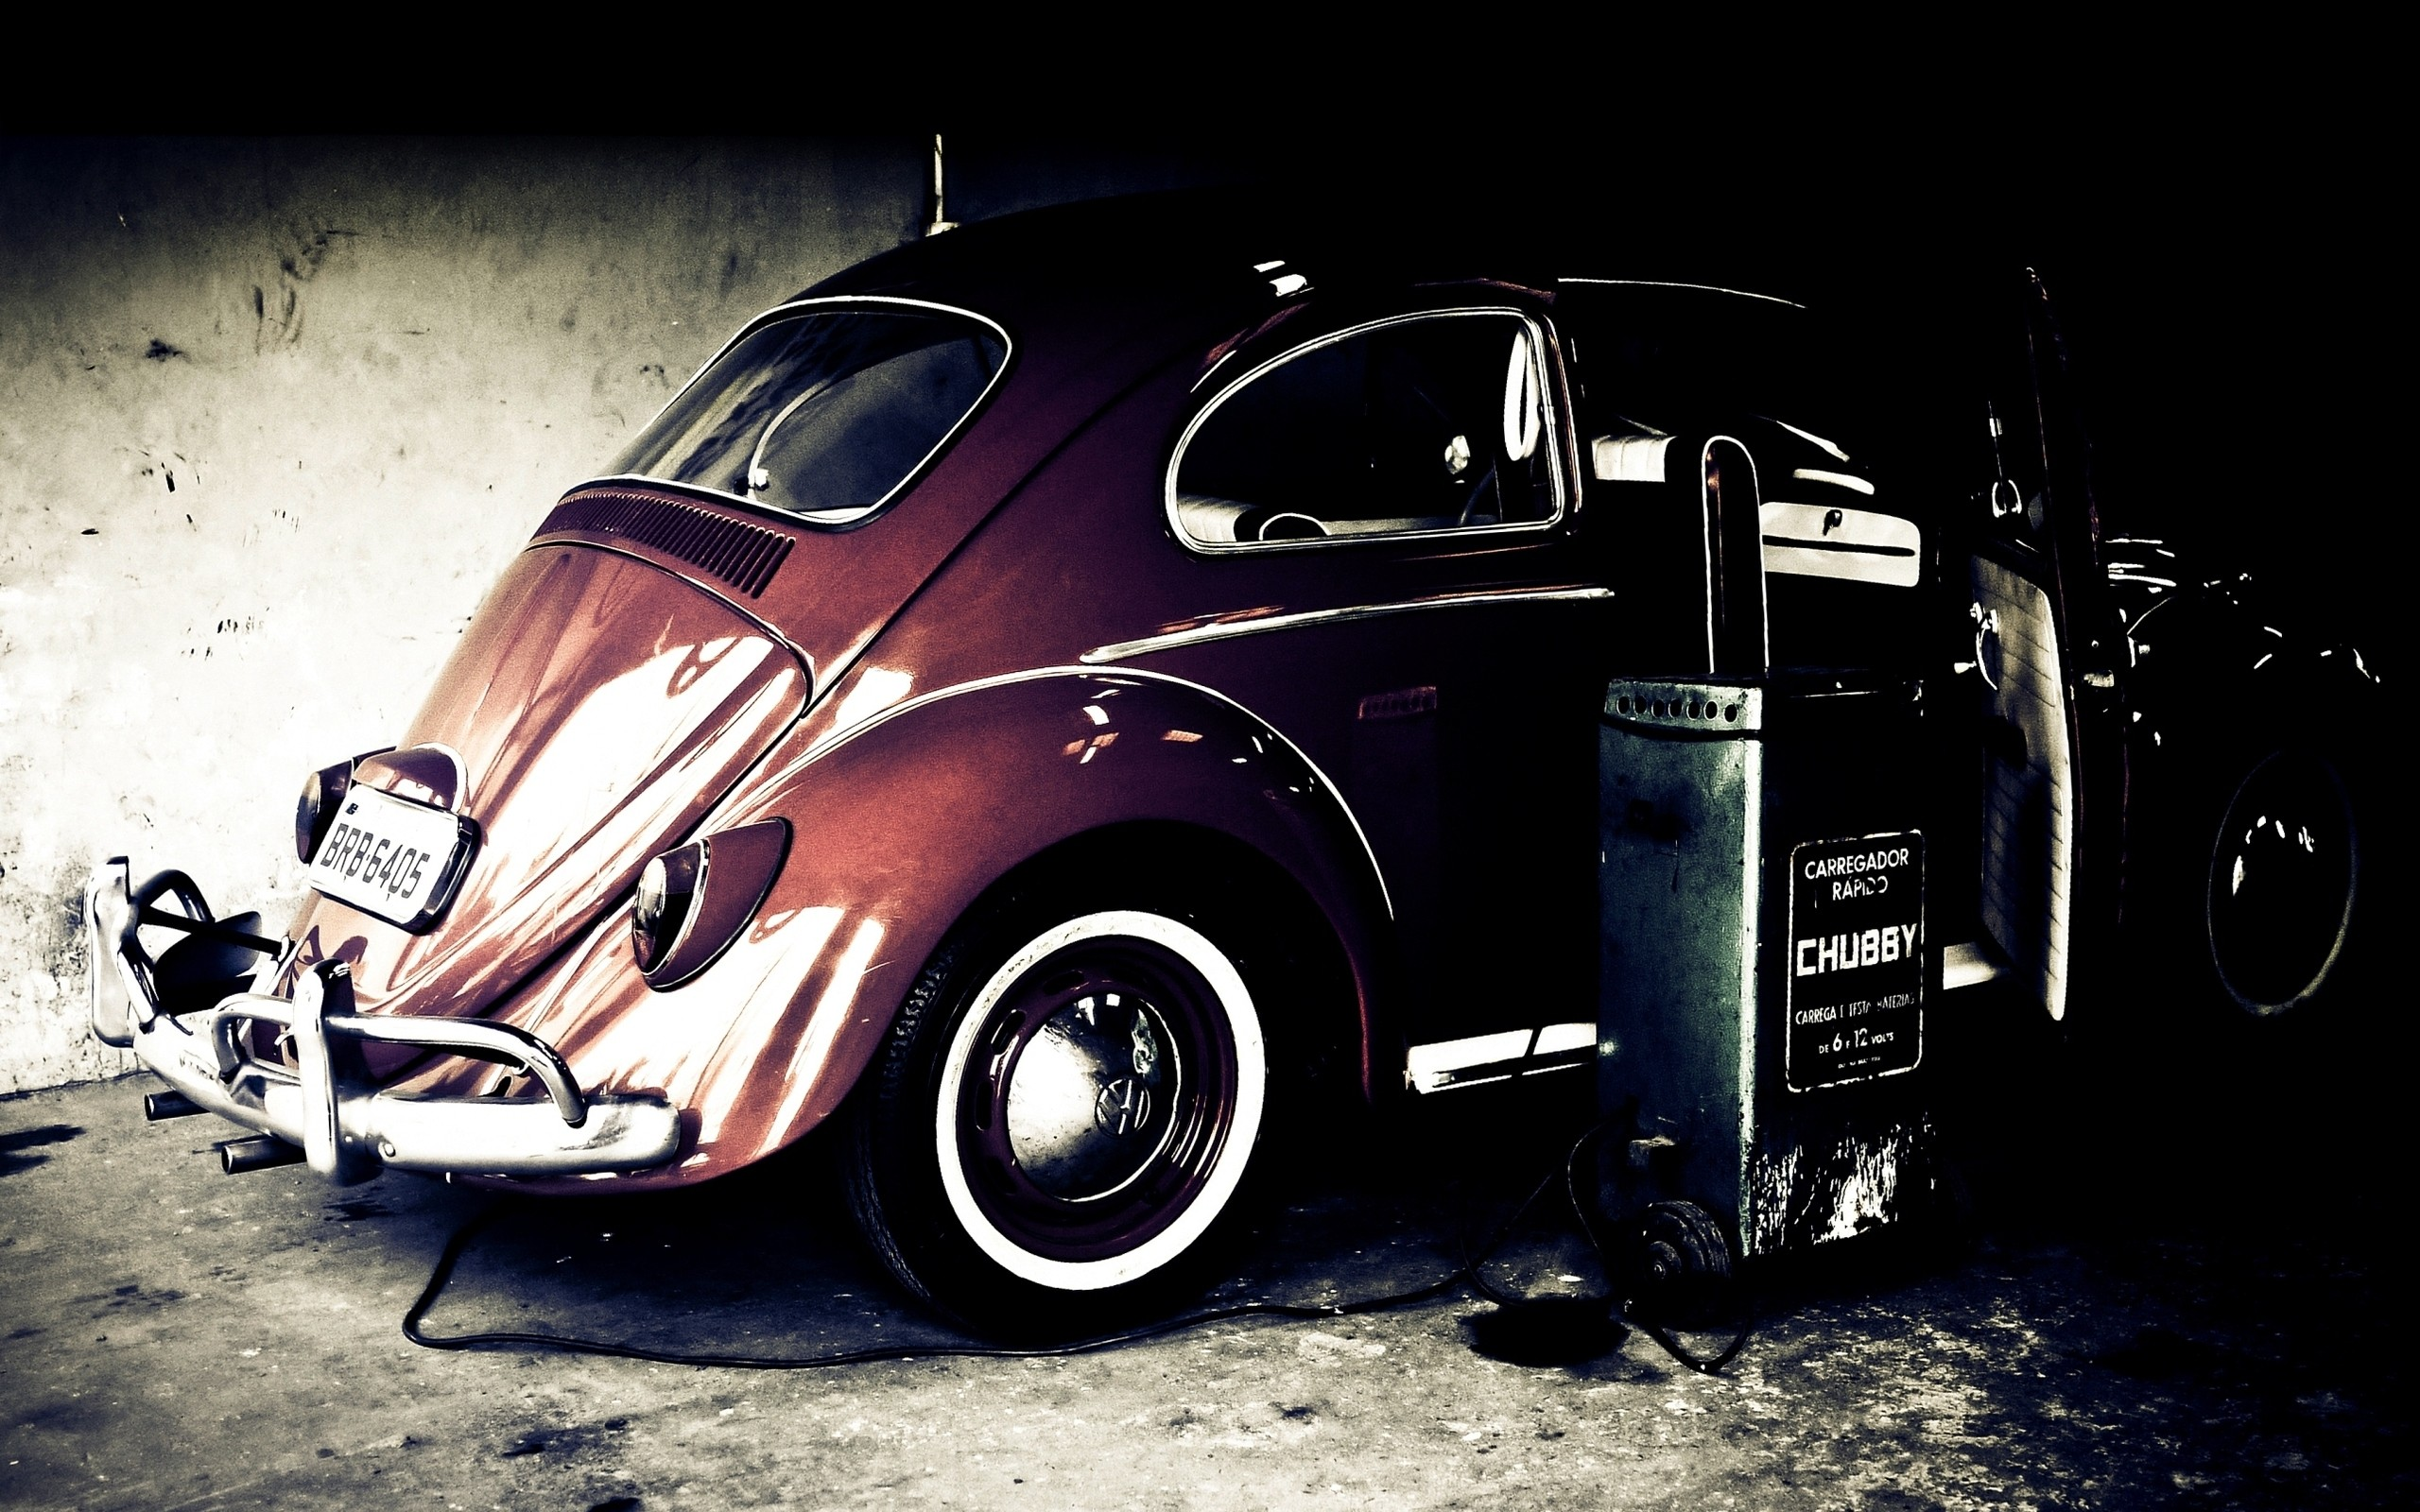 Volkswagen Wallpaper Android Phones Wallpaper with 2560x1600 2560x1600